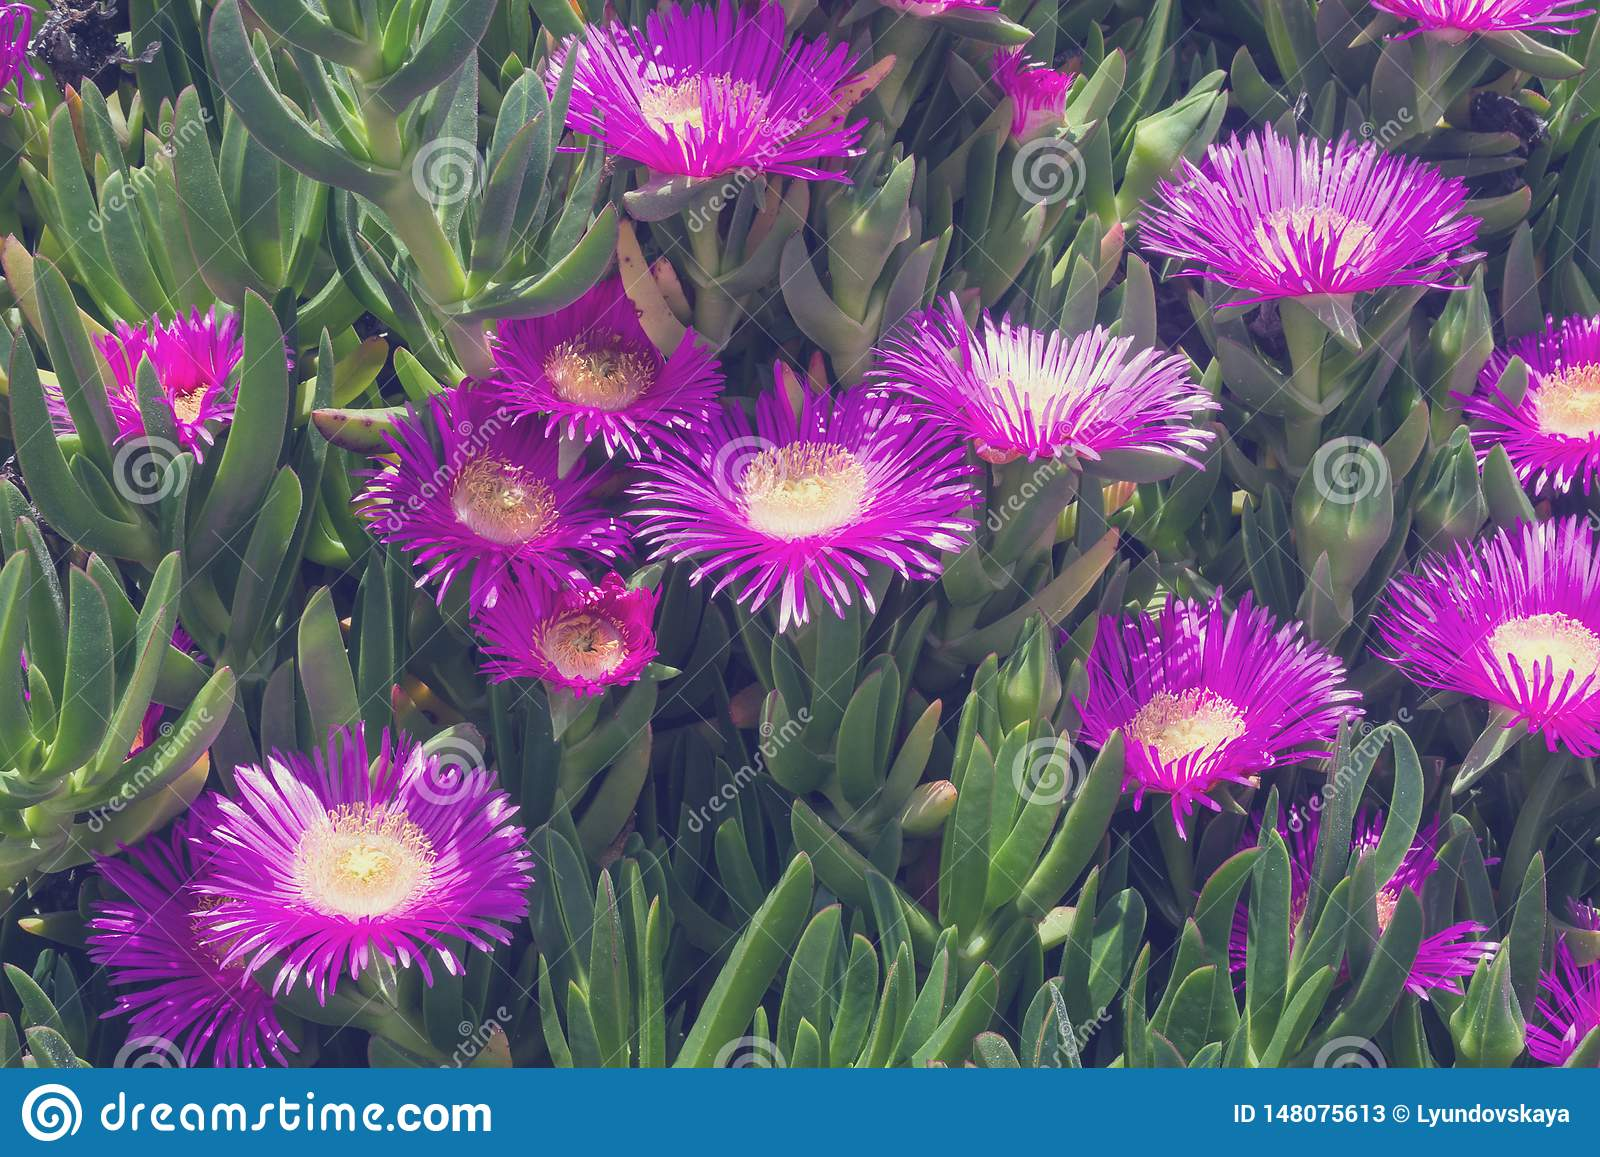 Violet Flowers And Thick Green Leaves Of Carpobrotus Carpobrotus Edulis Is An Edible And Medicinal Plant Succulents Stock Image Image Of Nature Flower 148075613